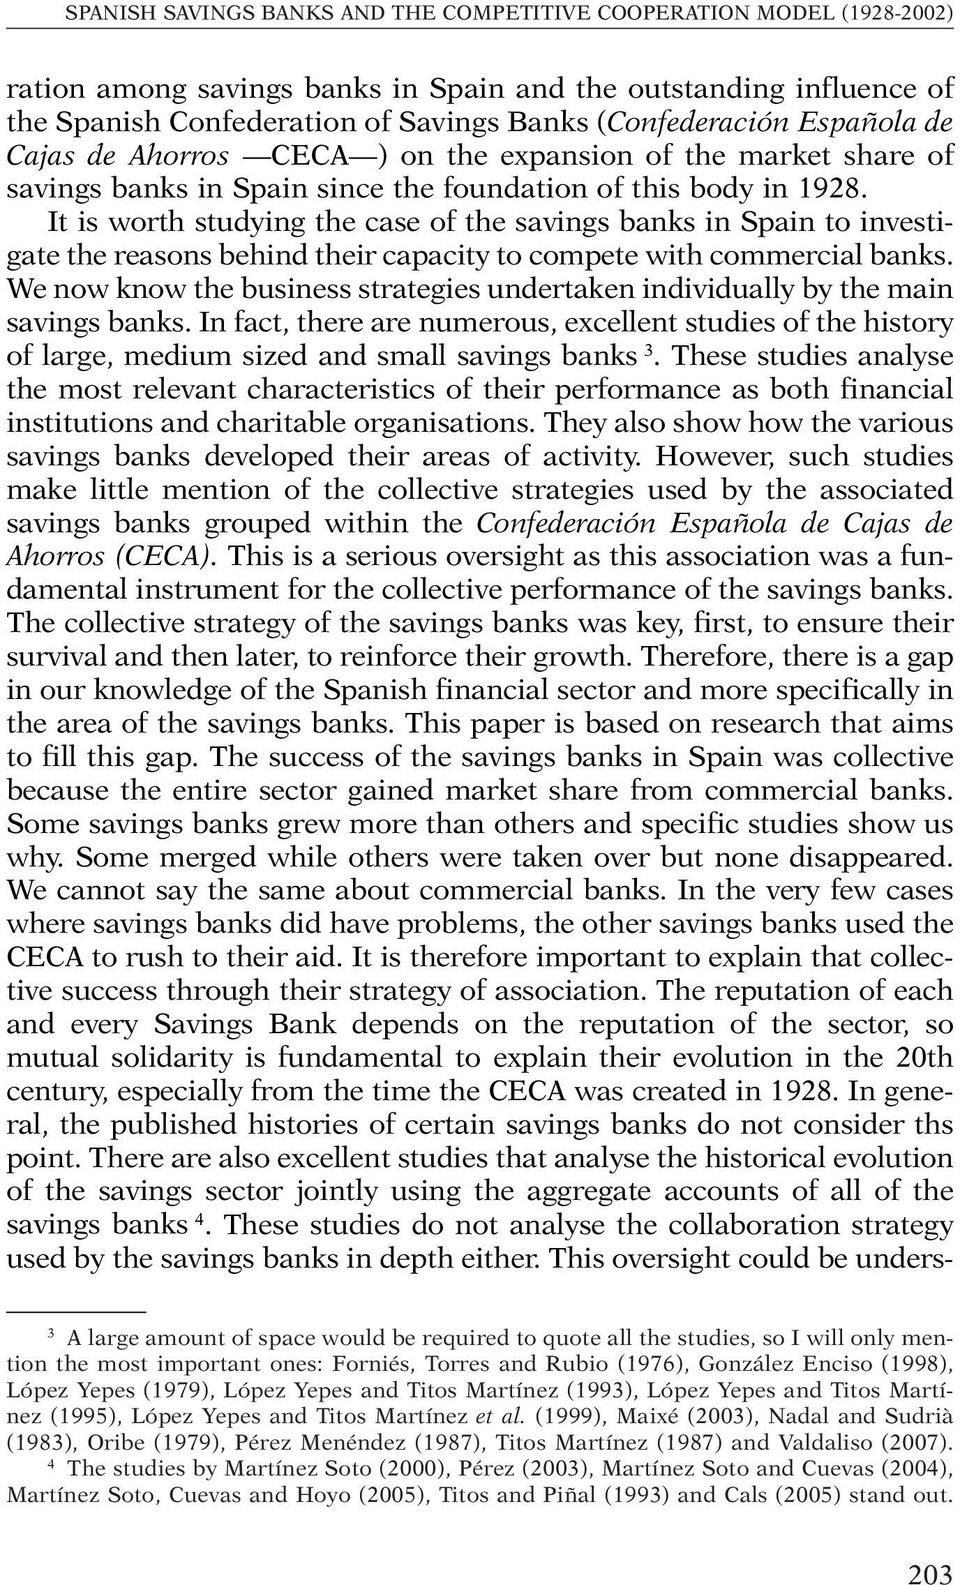 It is worth studying the case of the savings banks in Spain to investigate the reasons behind their capacity to compete with commercial banks.